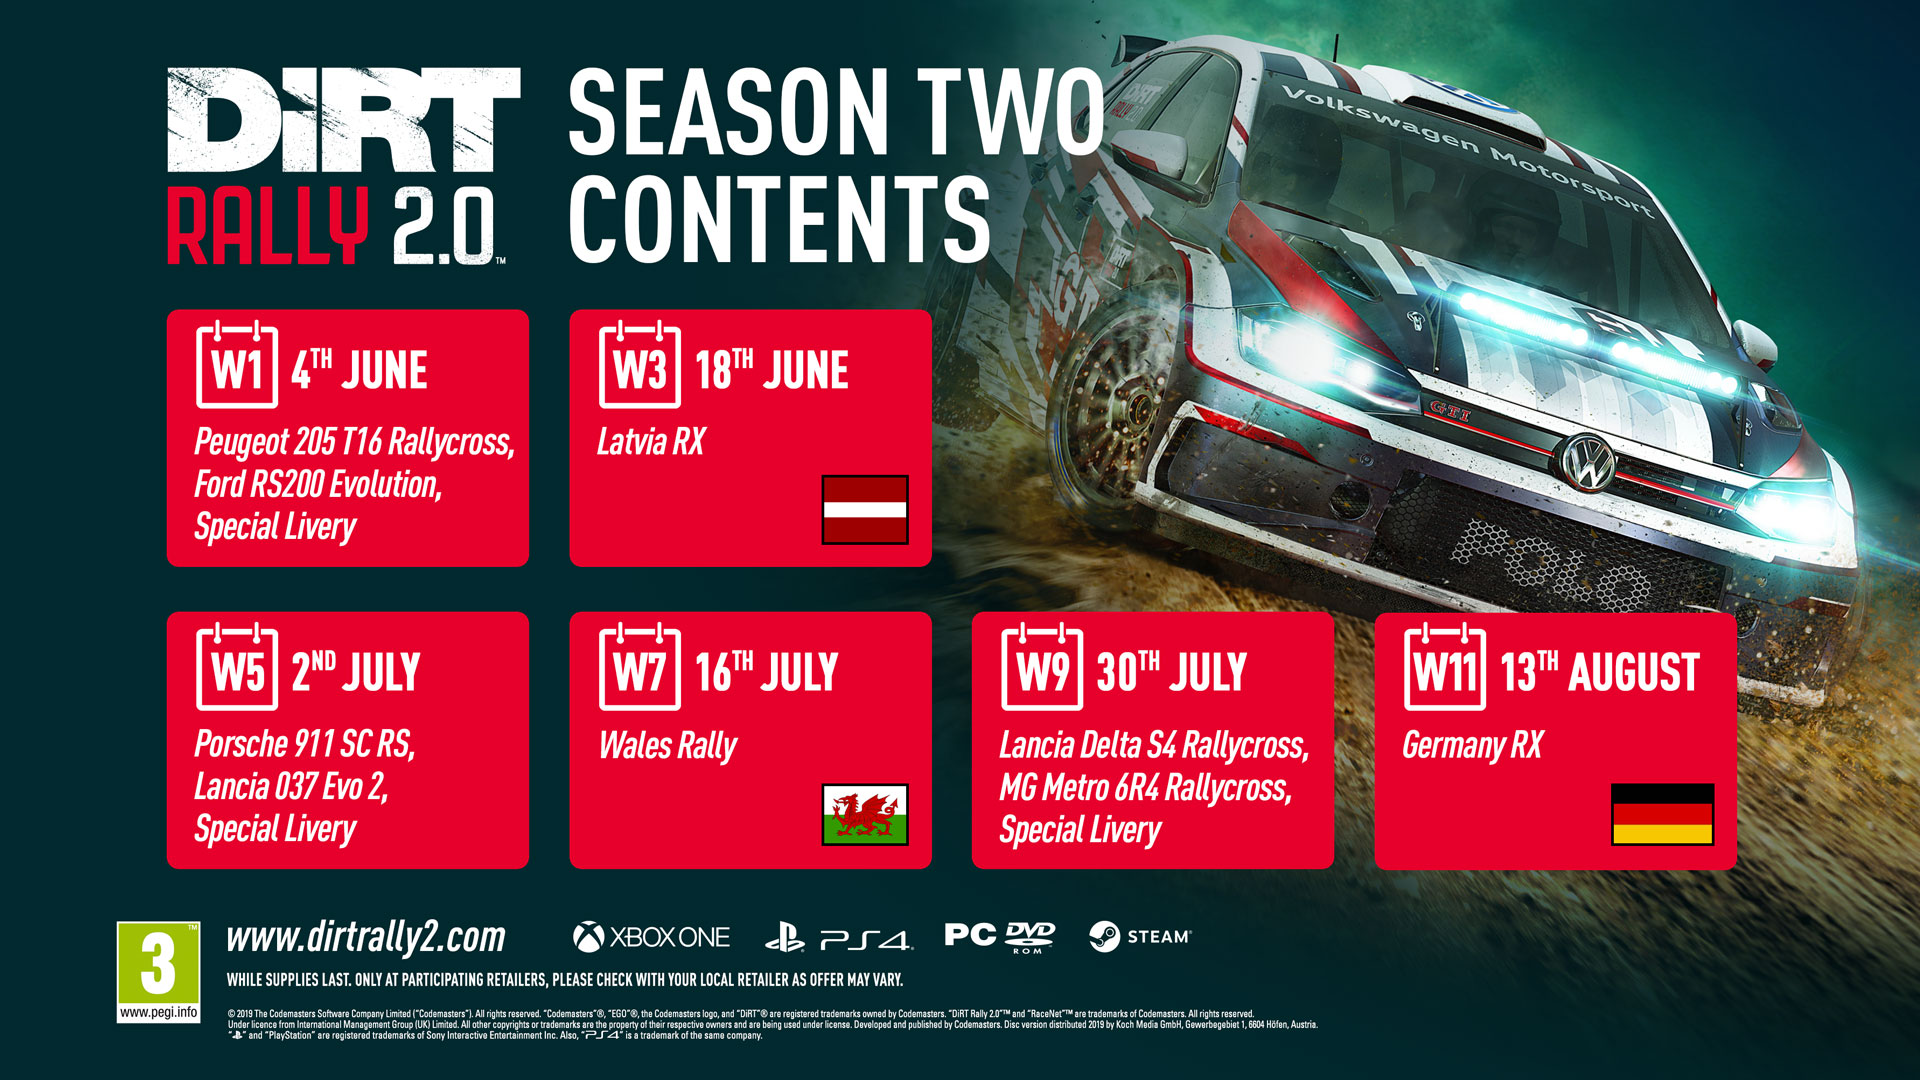 dirt-rally-2-0-season-2-dlc-launch-jpg.309137